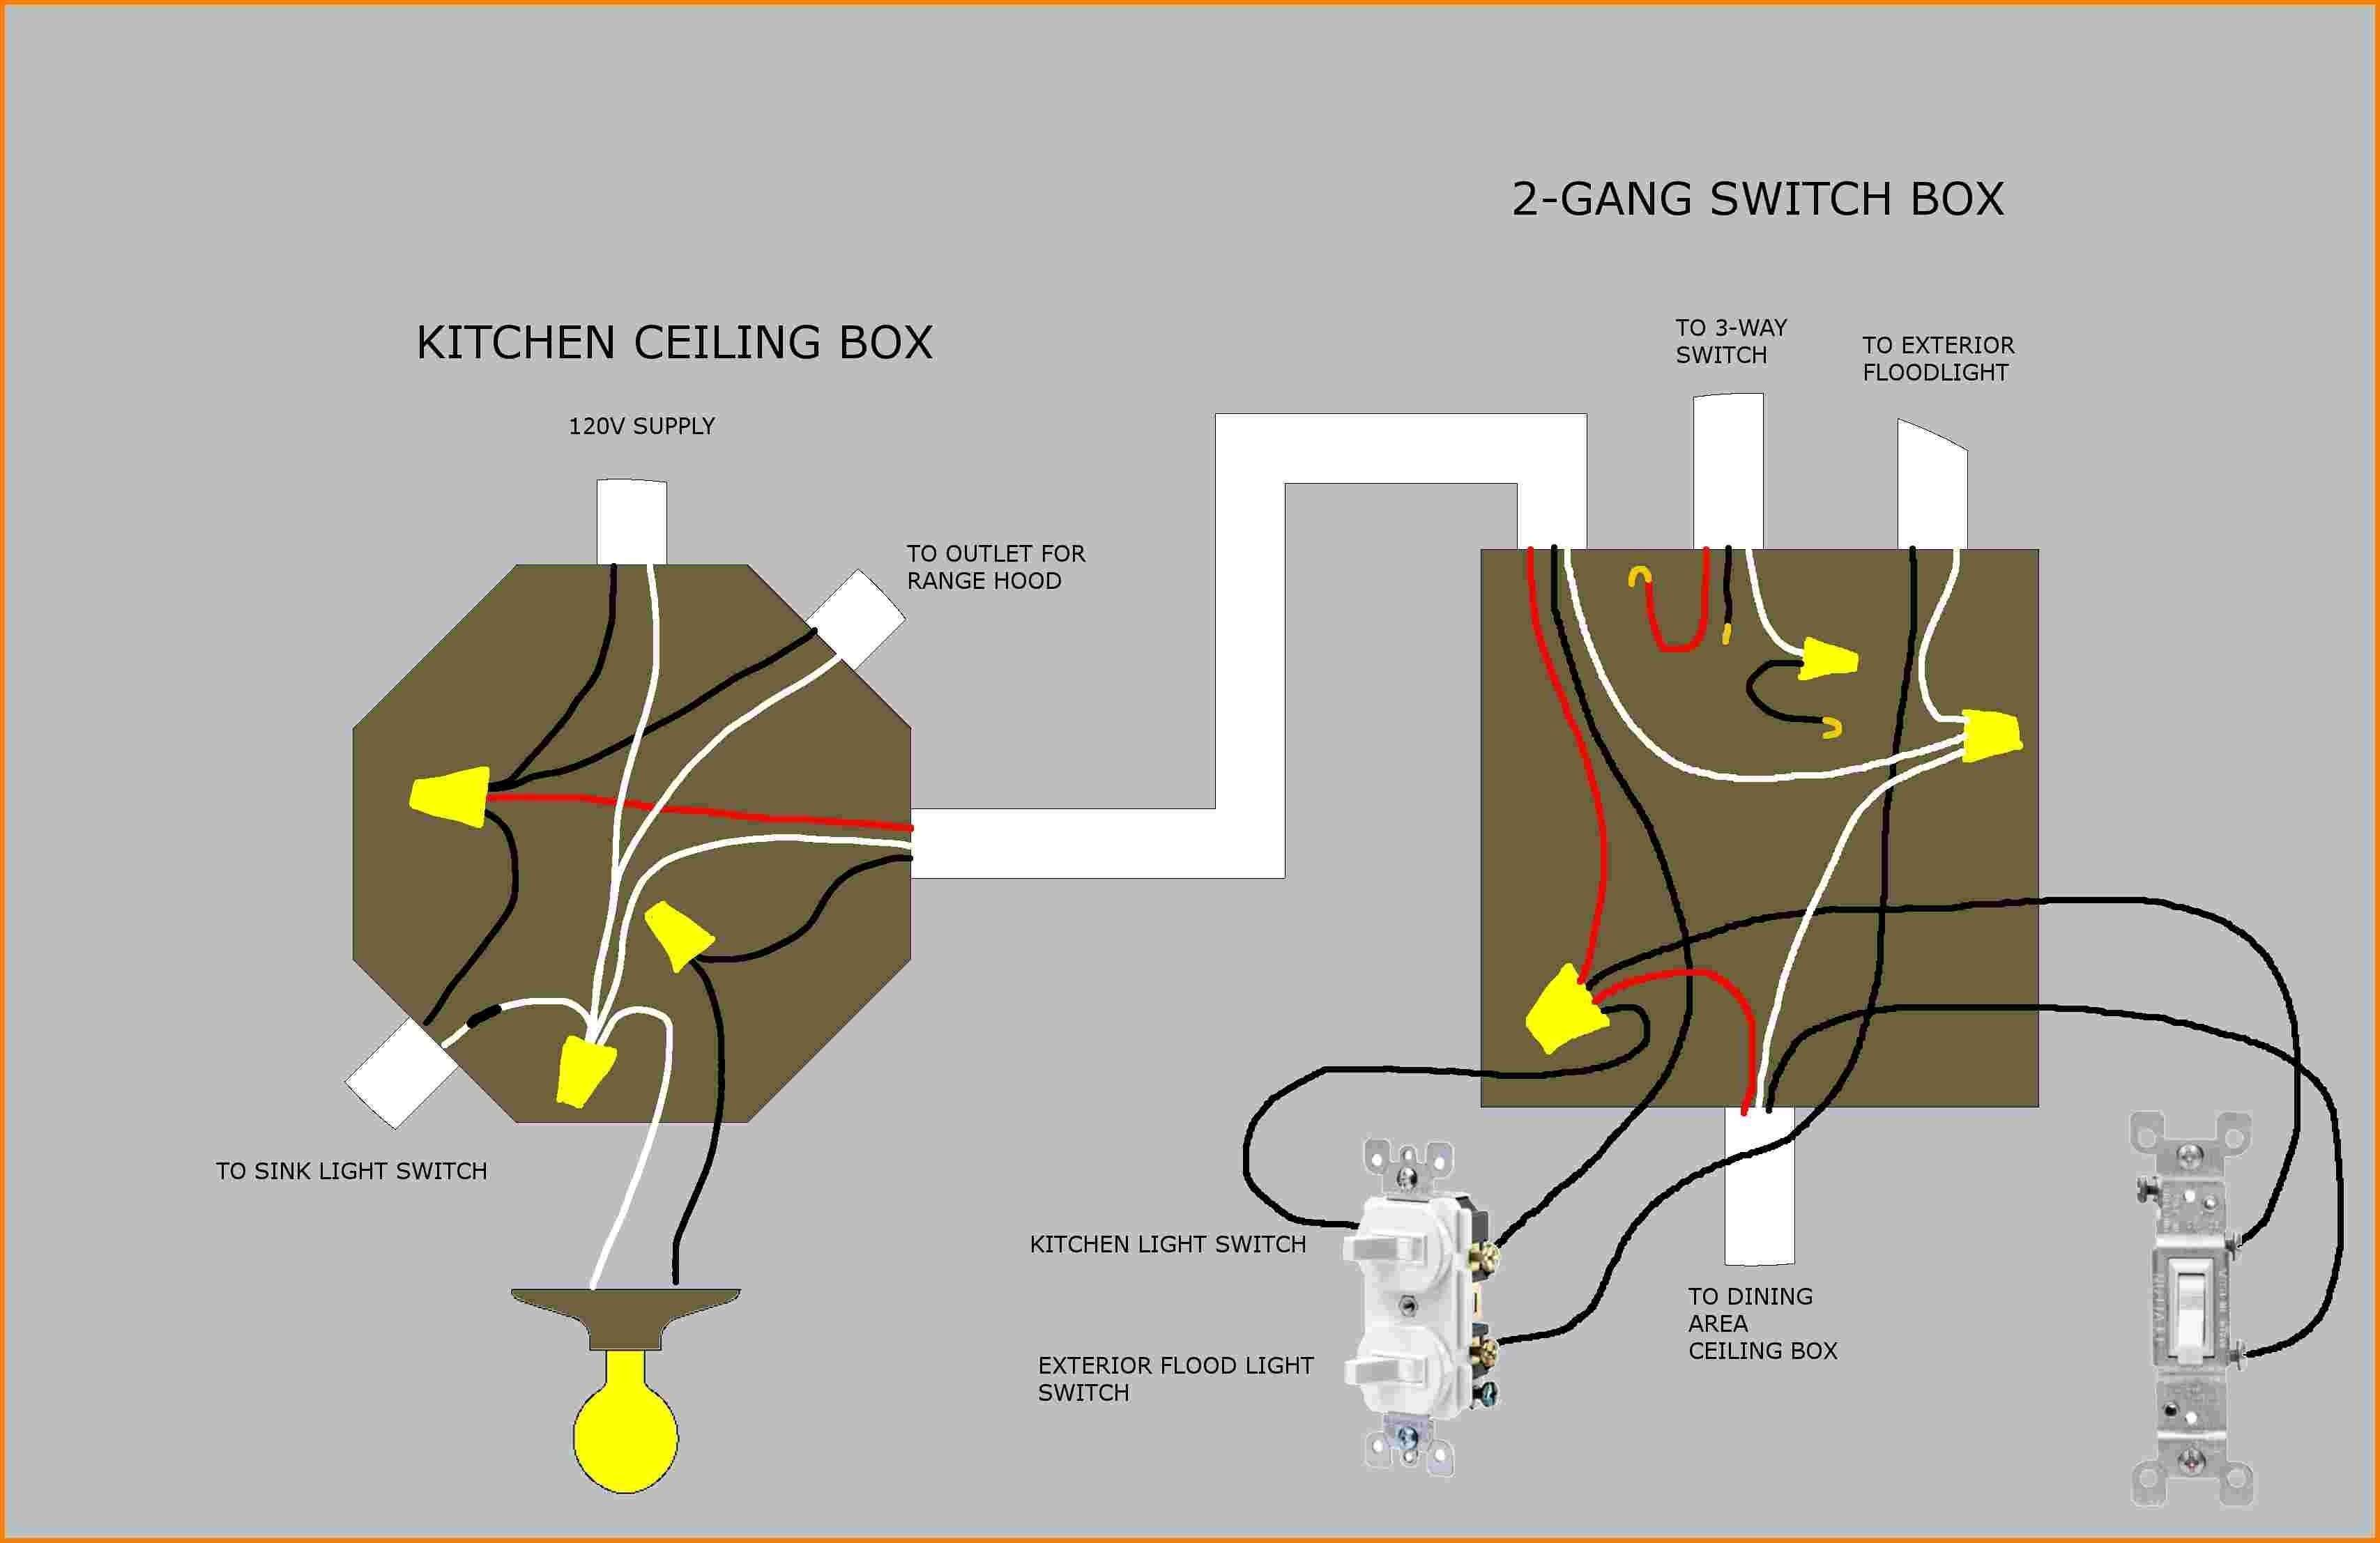 Wiring Diagram For Three Way Switch With Two Lights Reference 3 Wire Light Fixture Wire Lights Three Way Switch